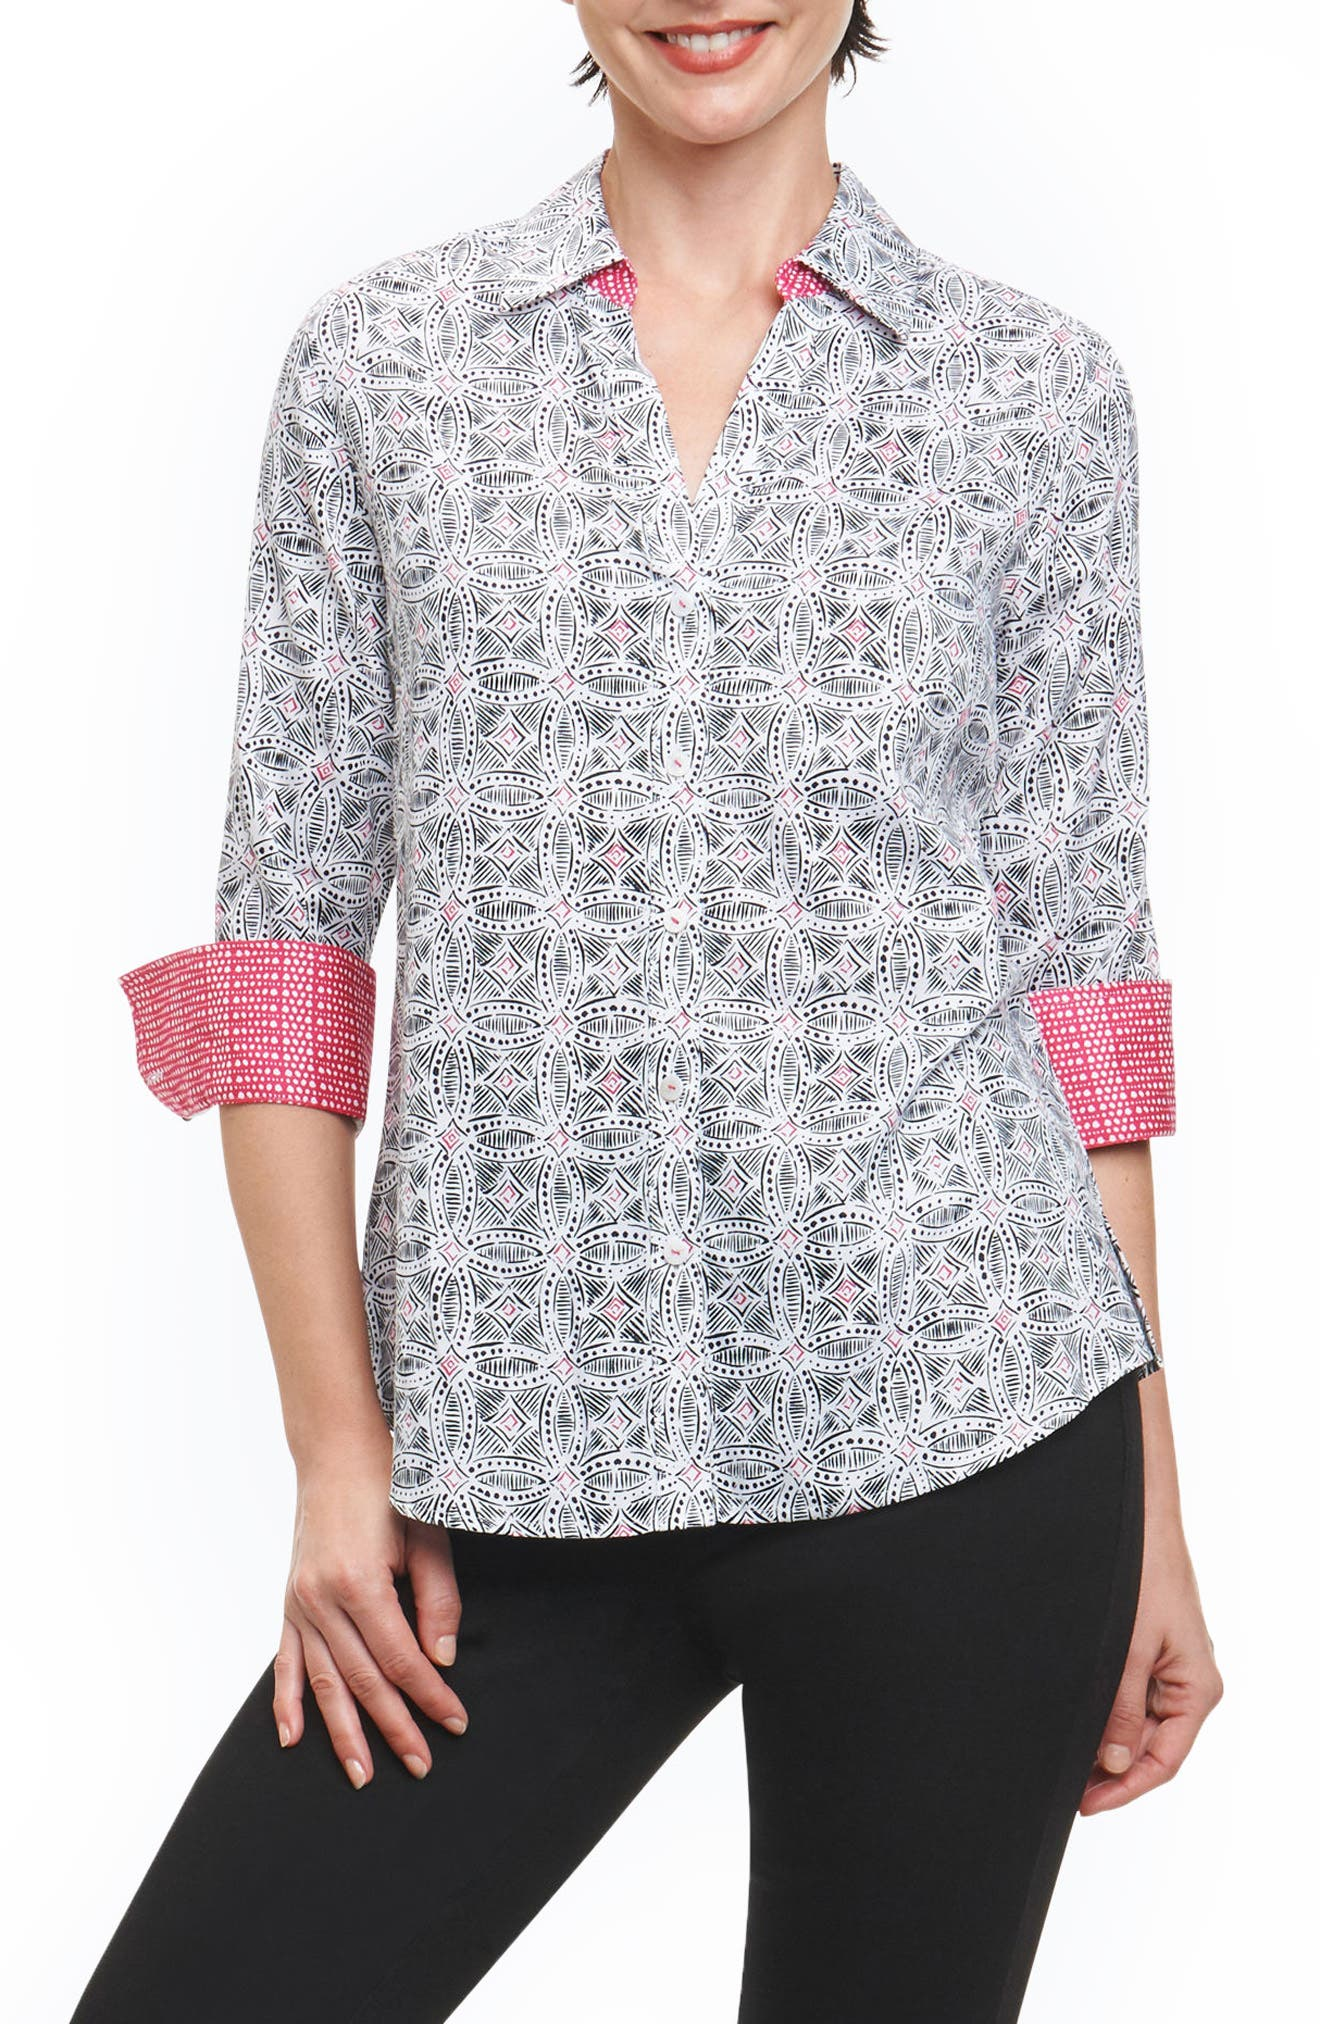 Mary Circle Tile Wrinkle Free Shirt,                         Main,                         color, Multi